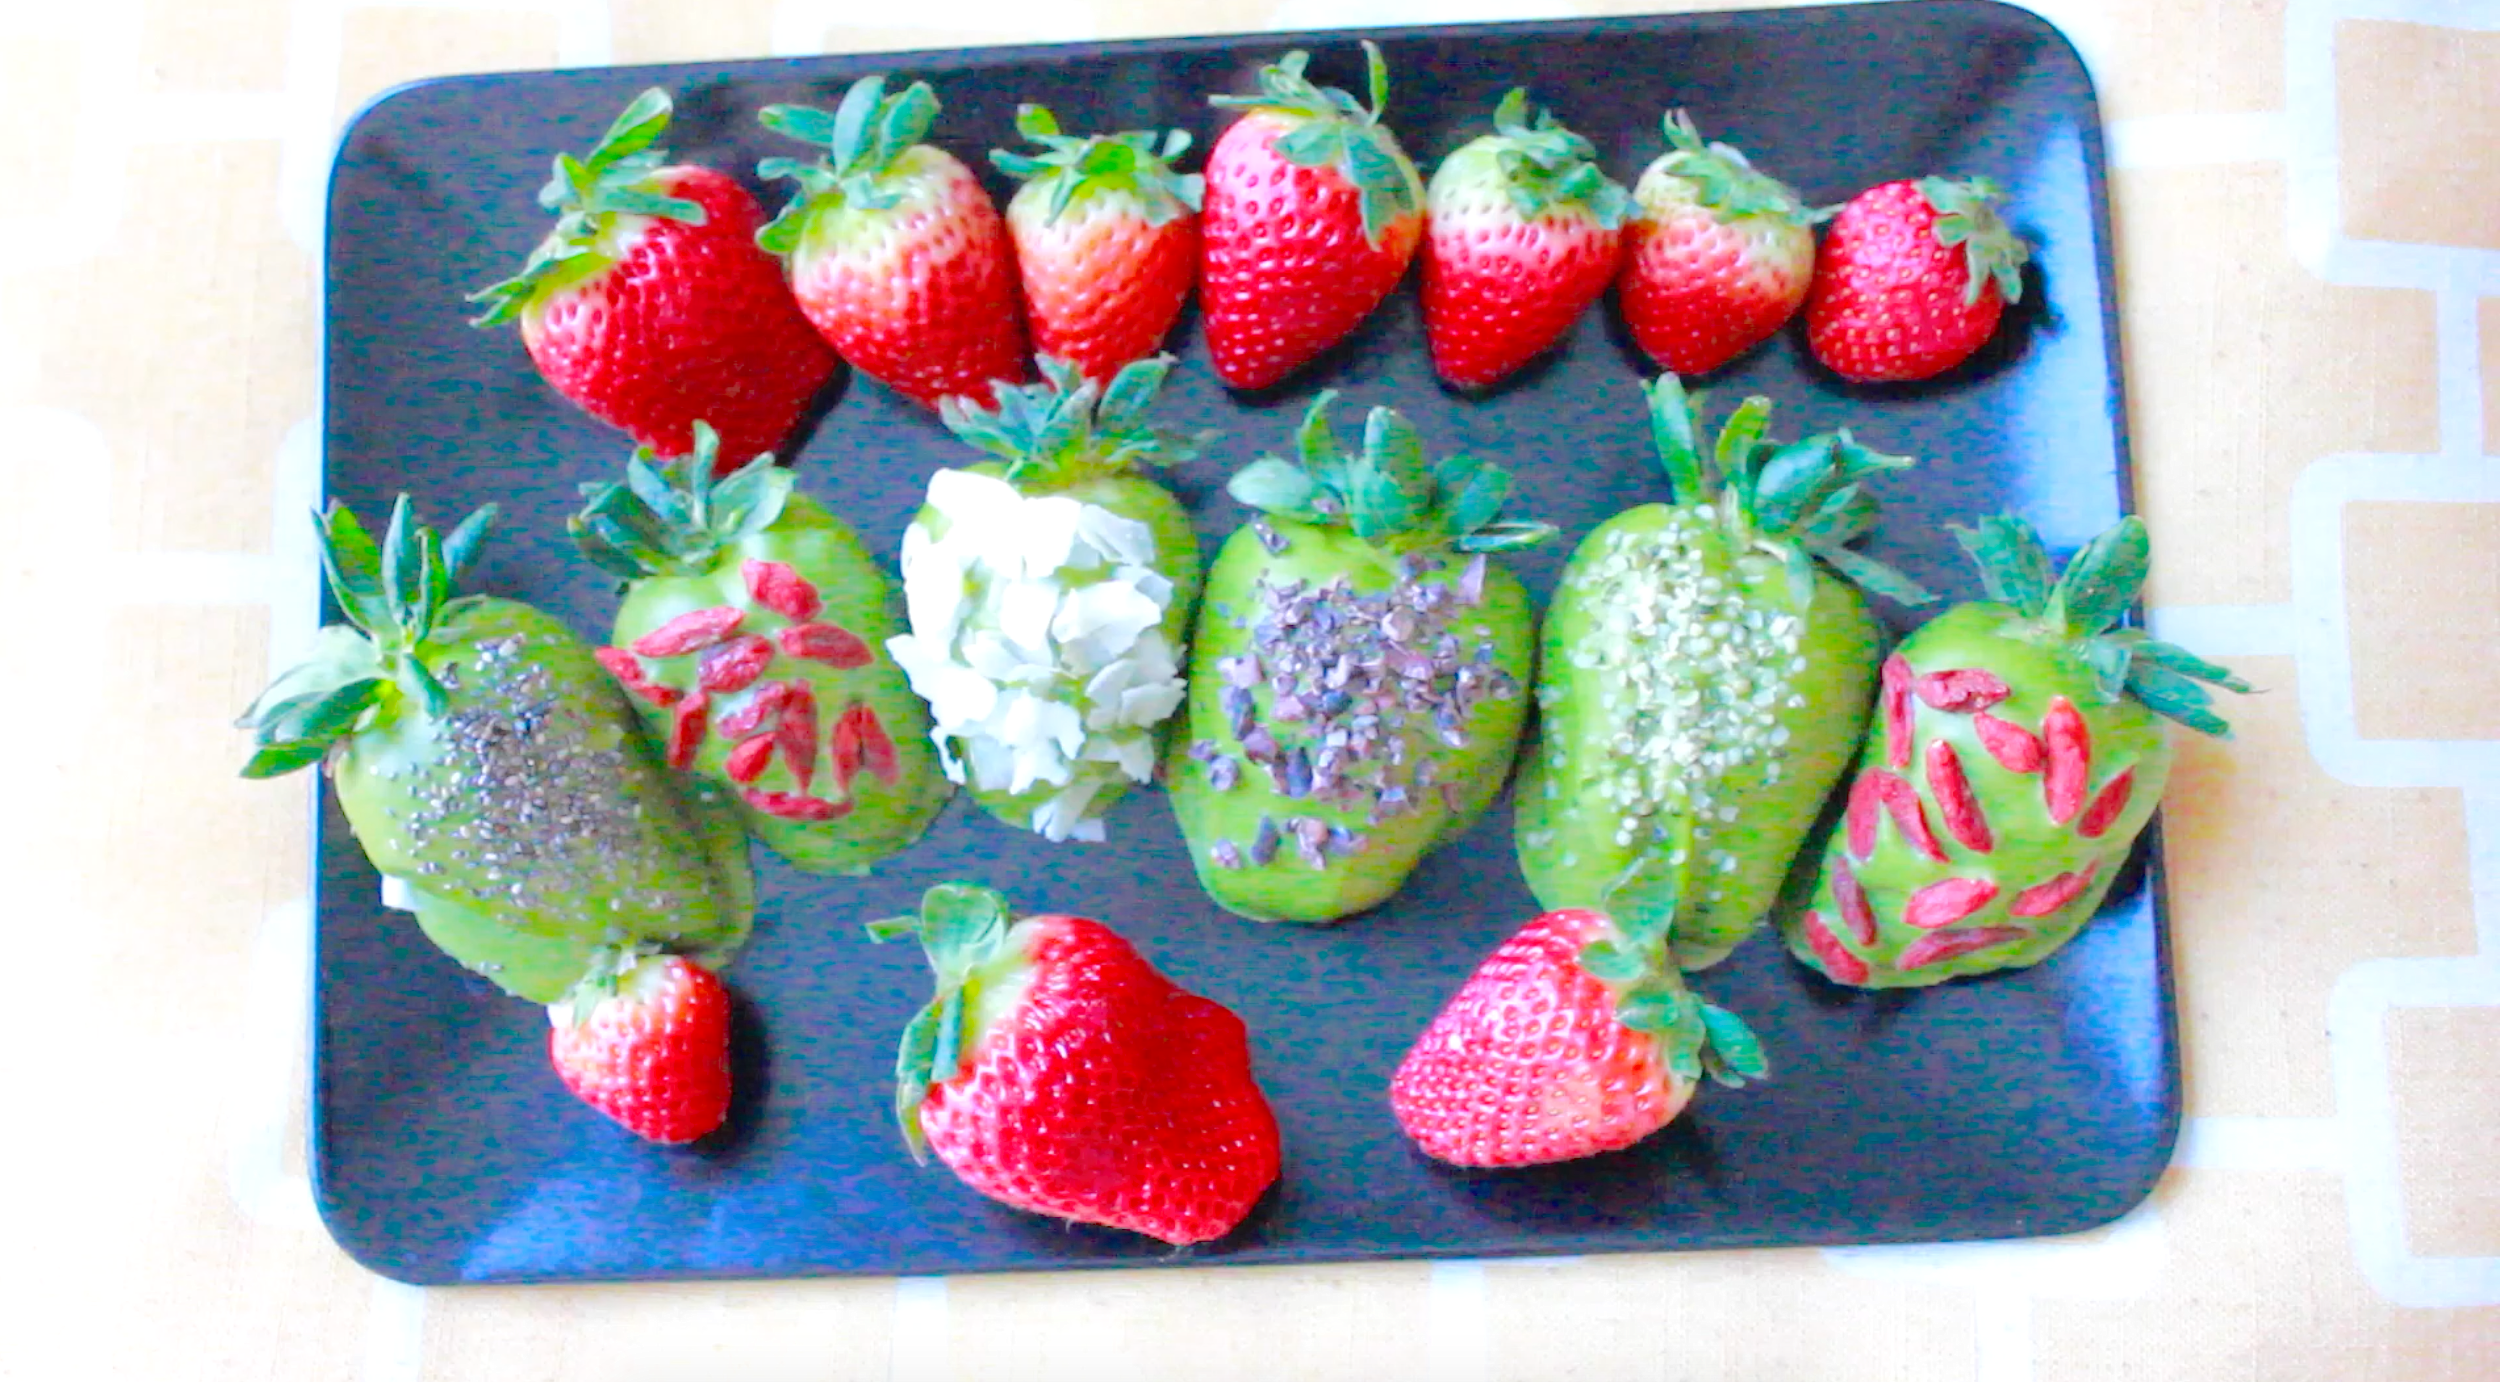 Matcha Dipped Strawberries by Charles Chen